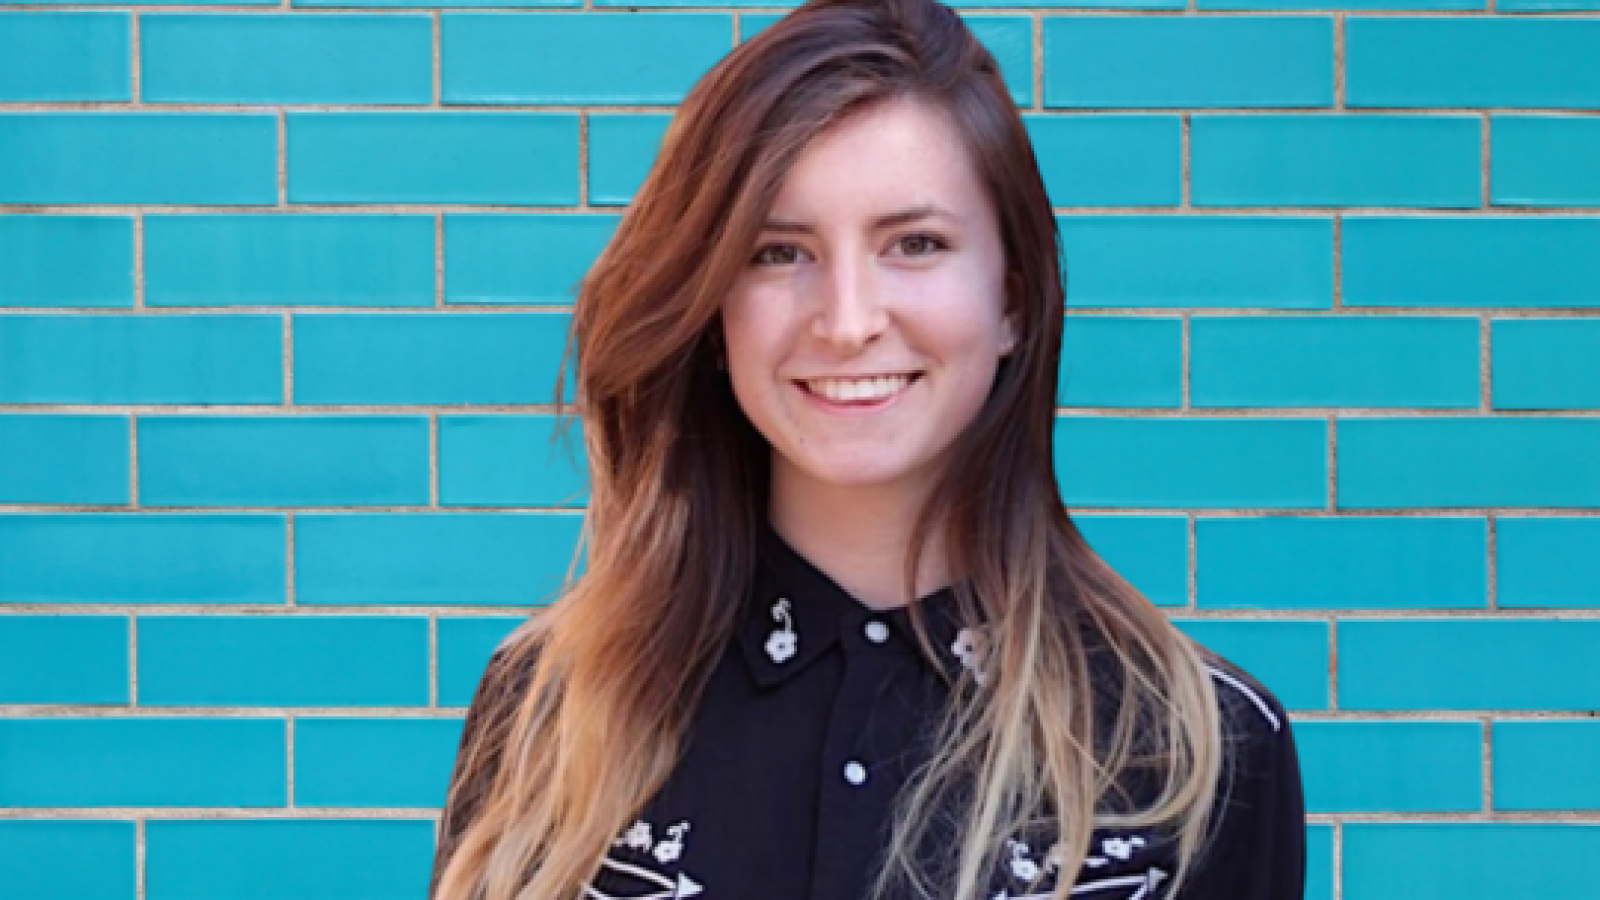 Rebecca Cox poses in front of teal blue brick wall.